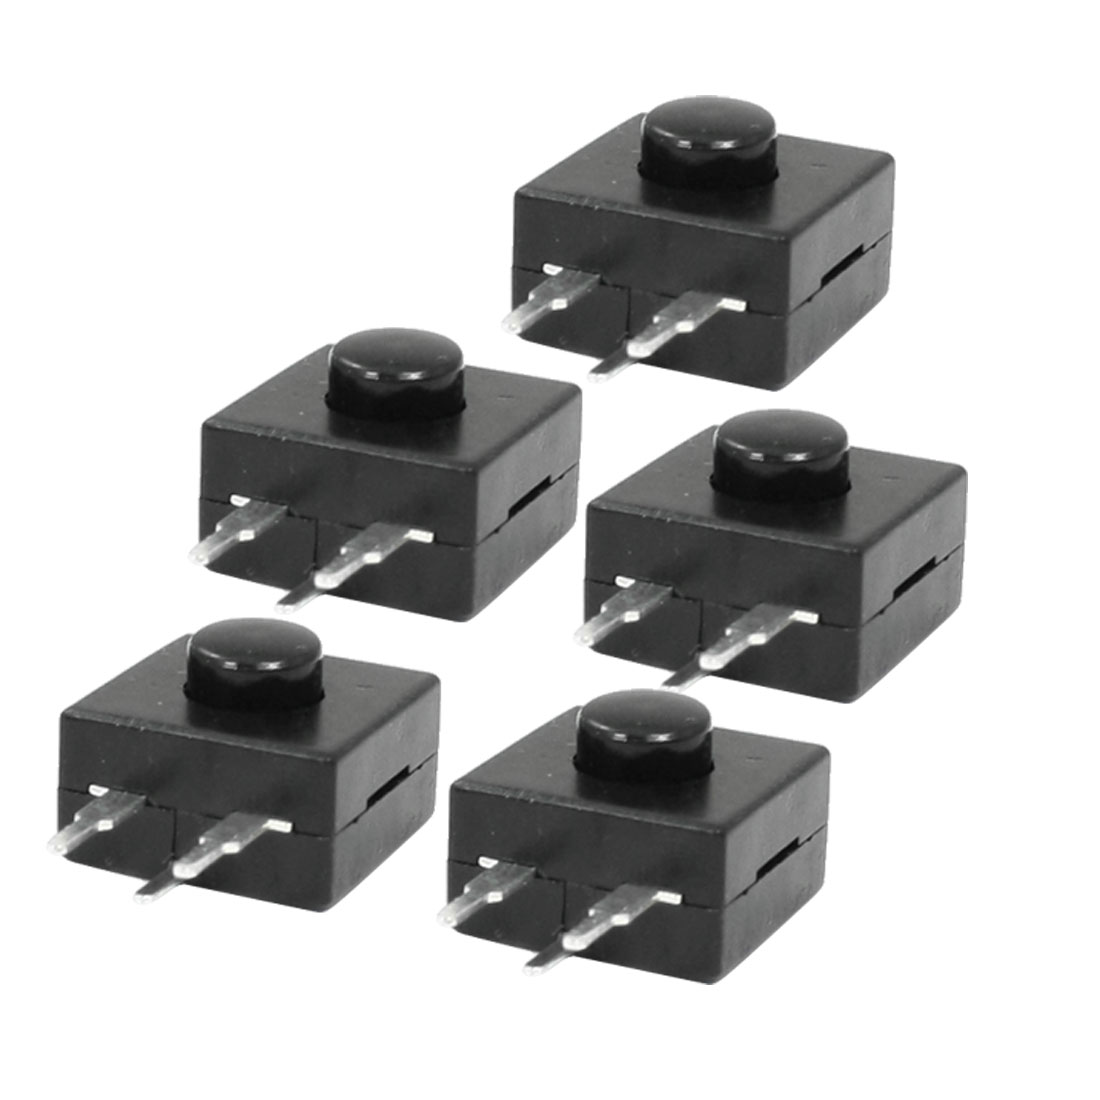 5 Pcs Horizontal 3 Terminals Latching Flashlight Torch Push Button Switch